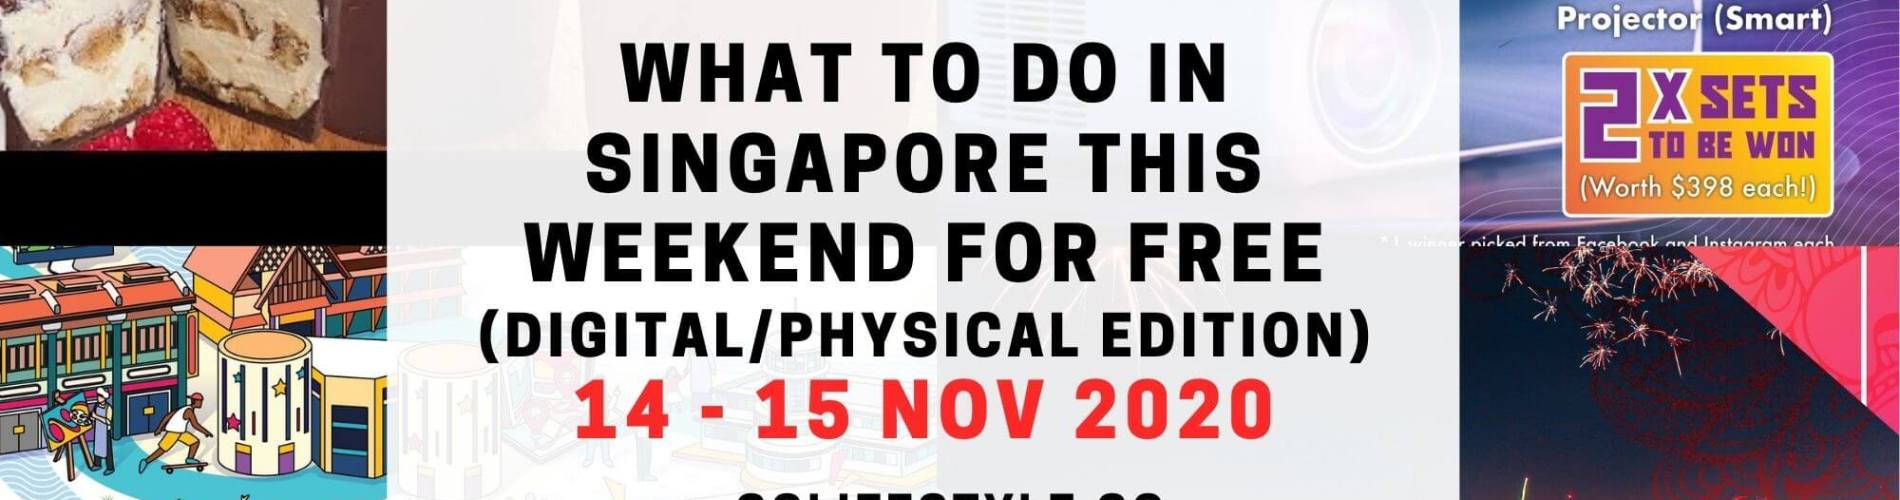 weekend what to do singapore 14 15 nov 2020